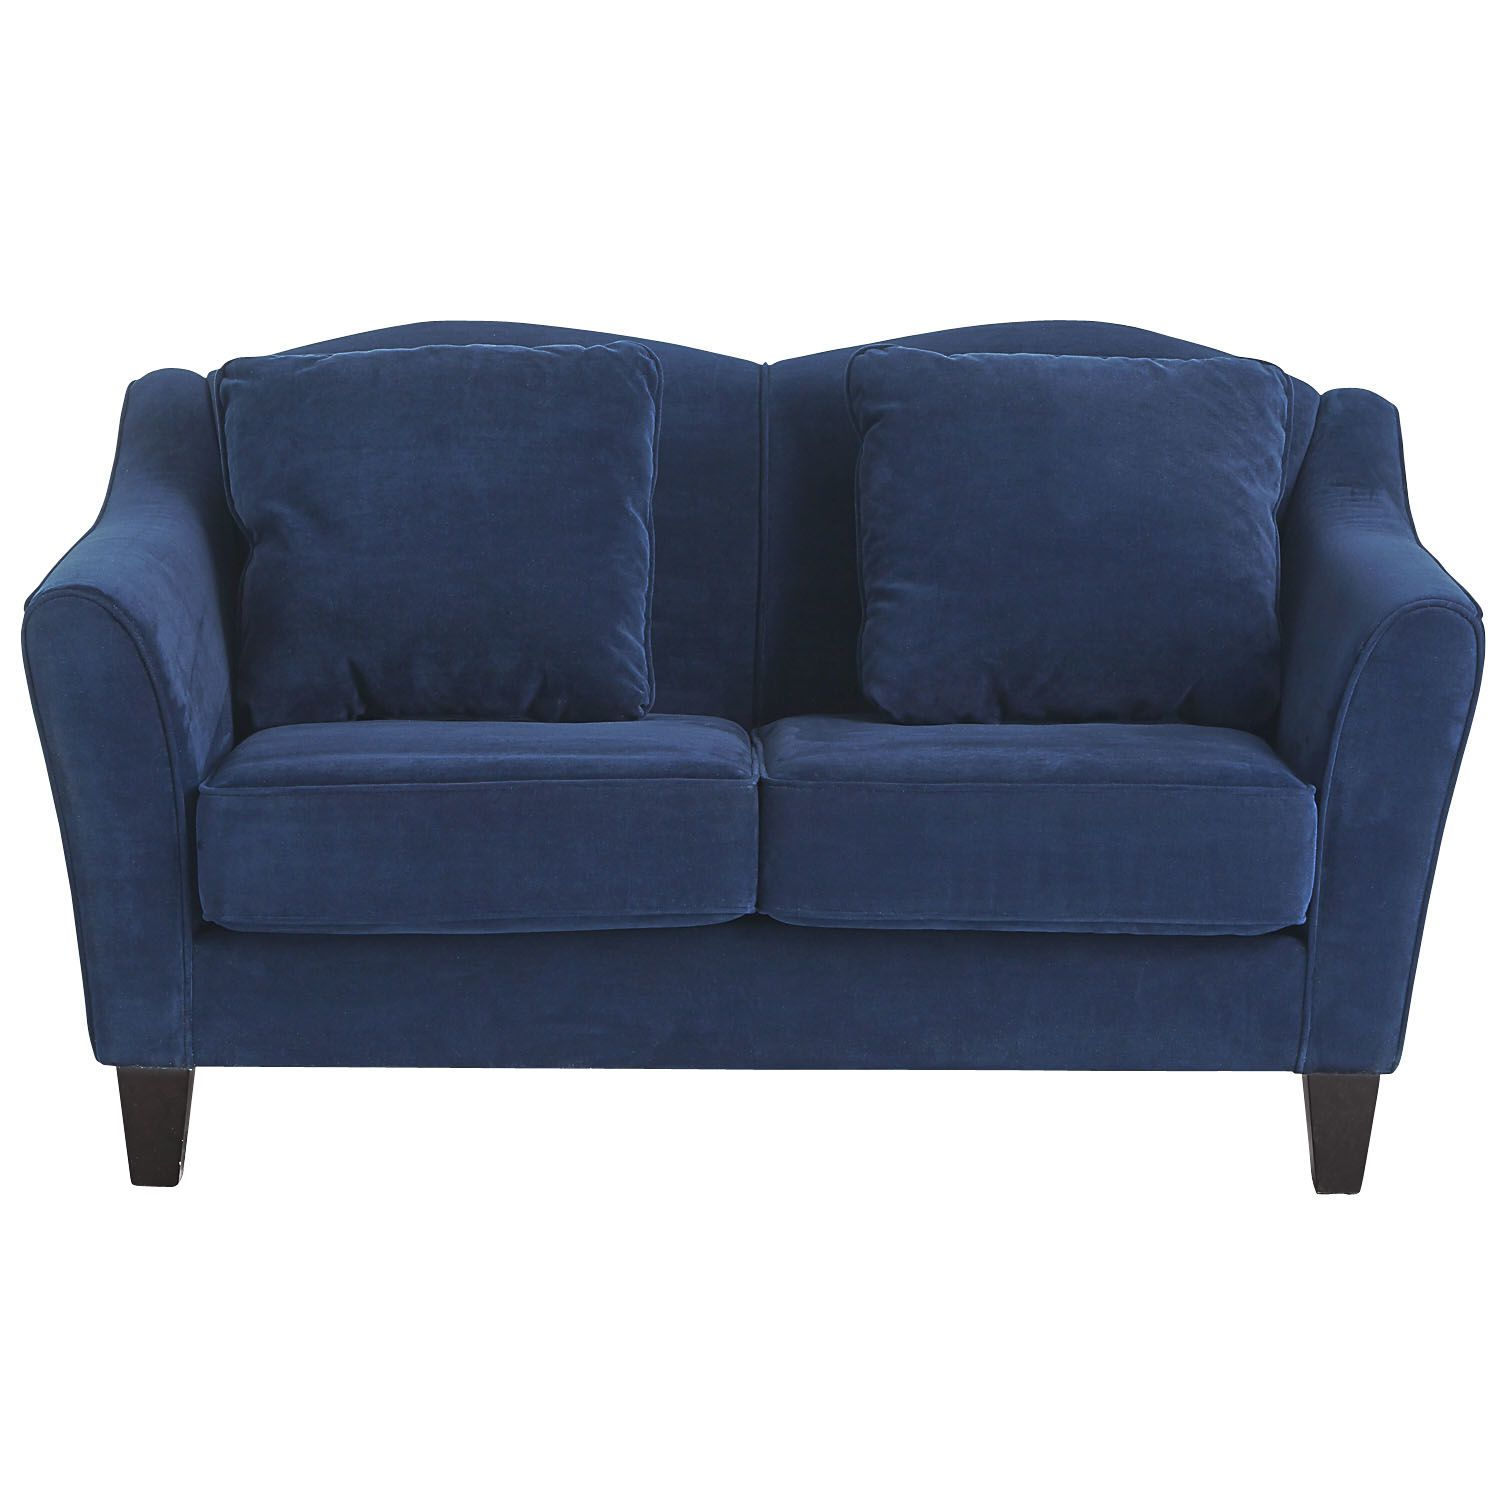 Abbie Sofa Navy Styles For Small Rooms Pier Brokeasshome